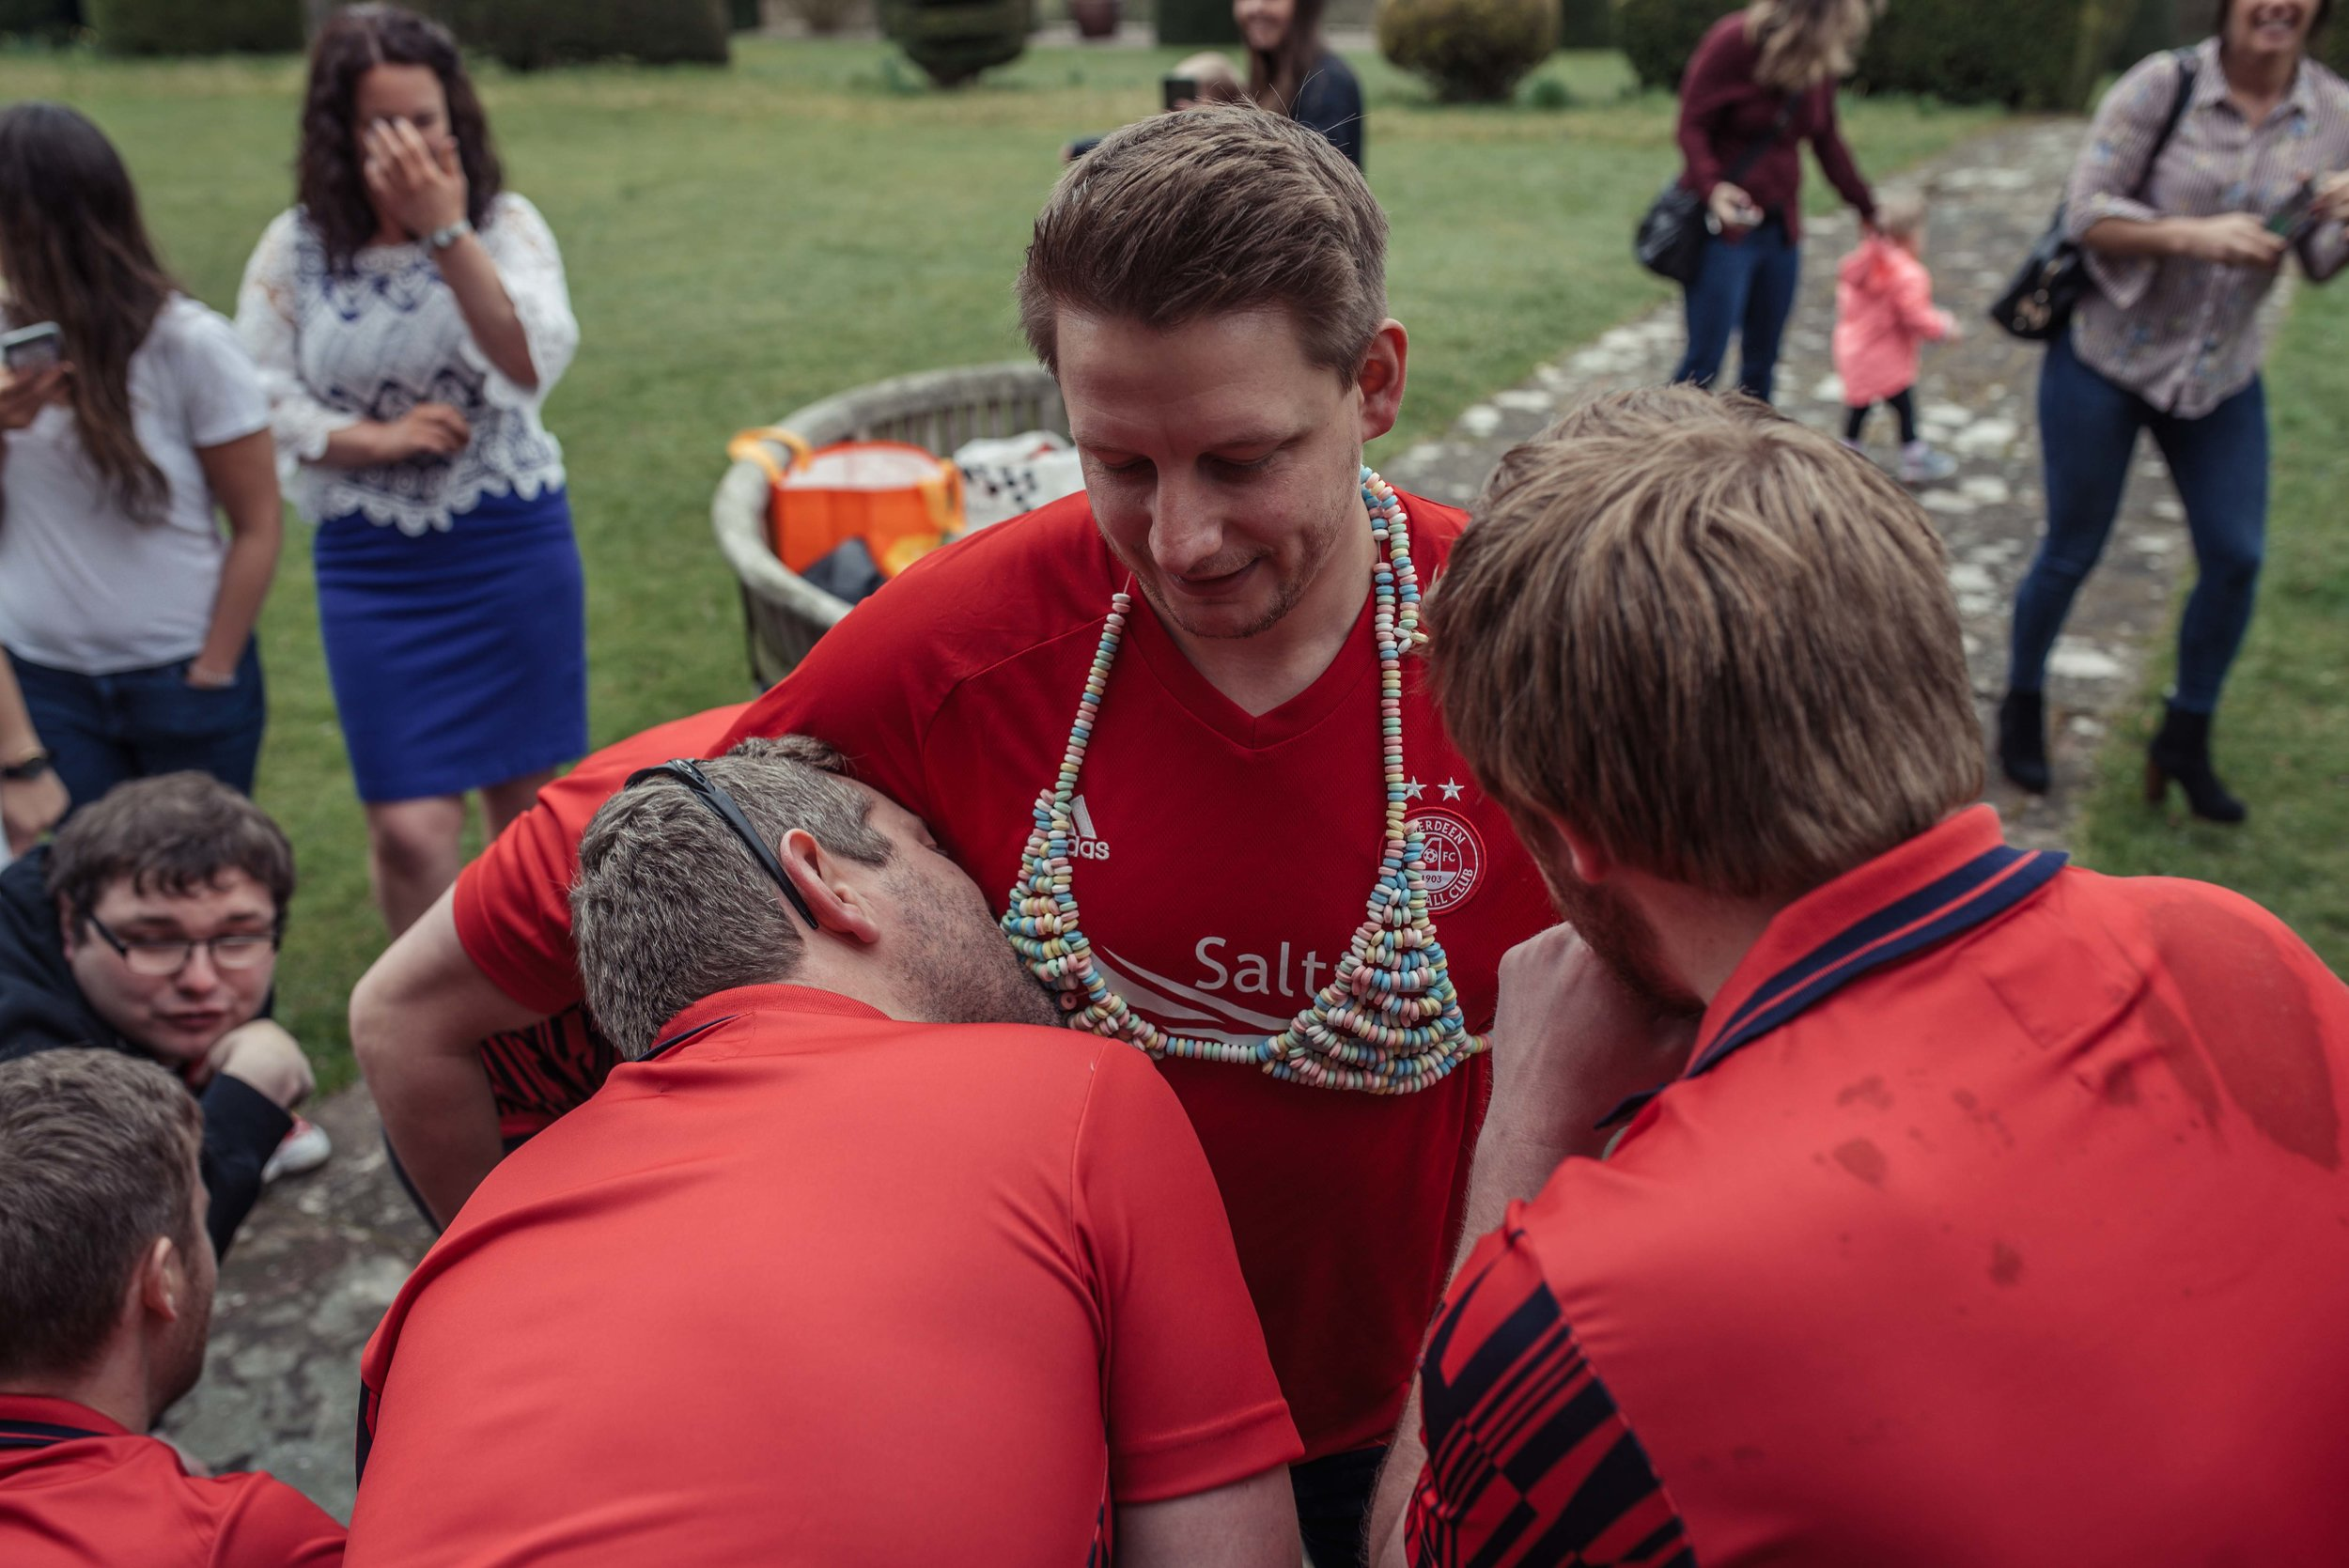 two groomsmen eat a candy bikini off the groom who is wearing a red shirt